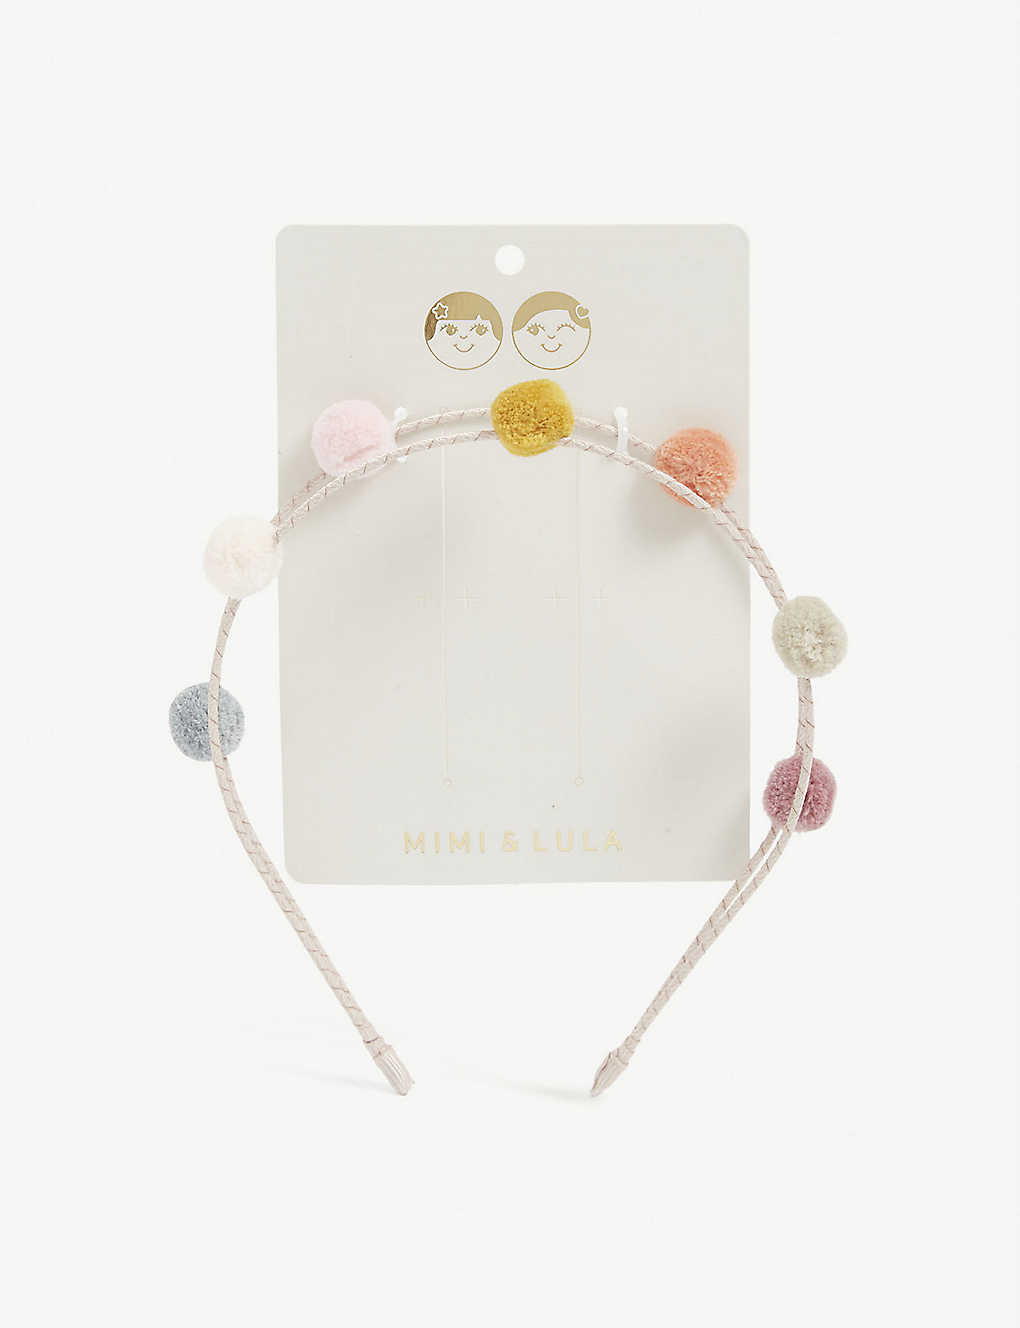 MIMI & LULA: Kids double pom pom headband